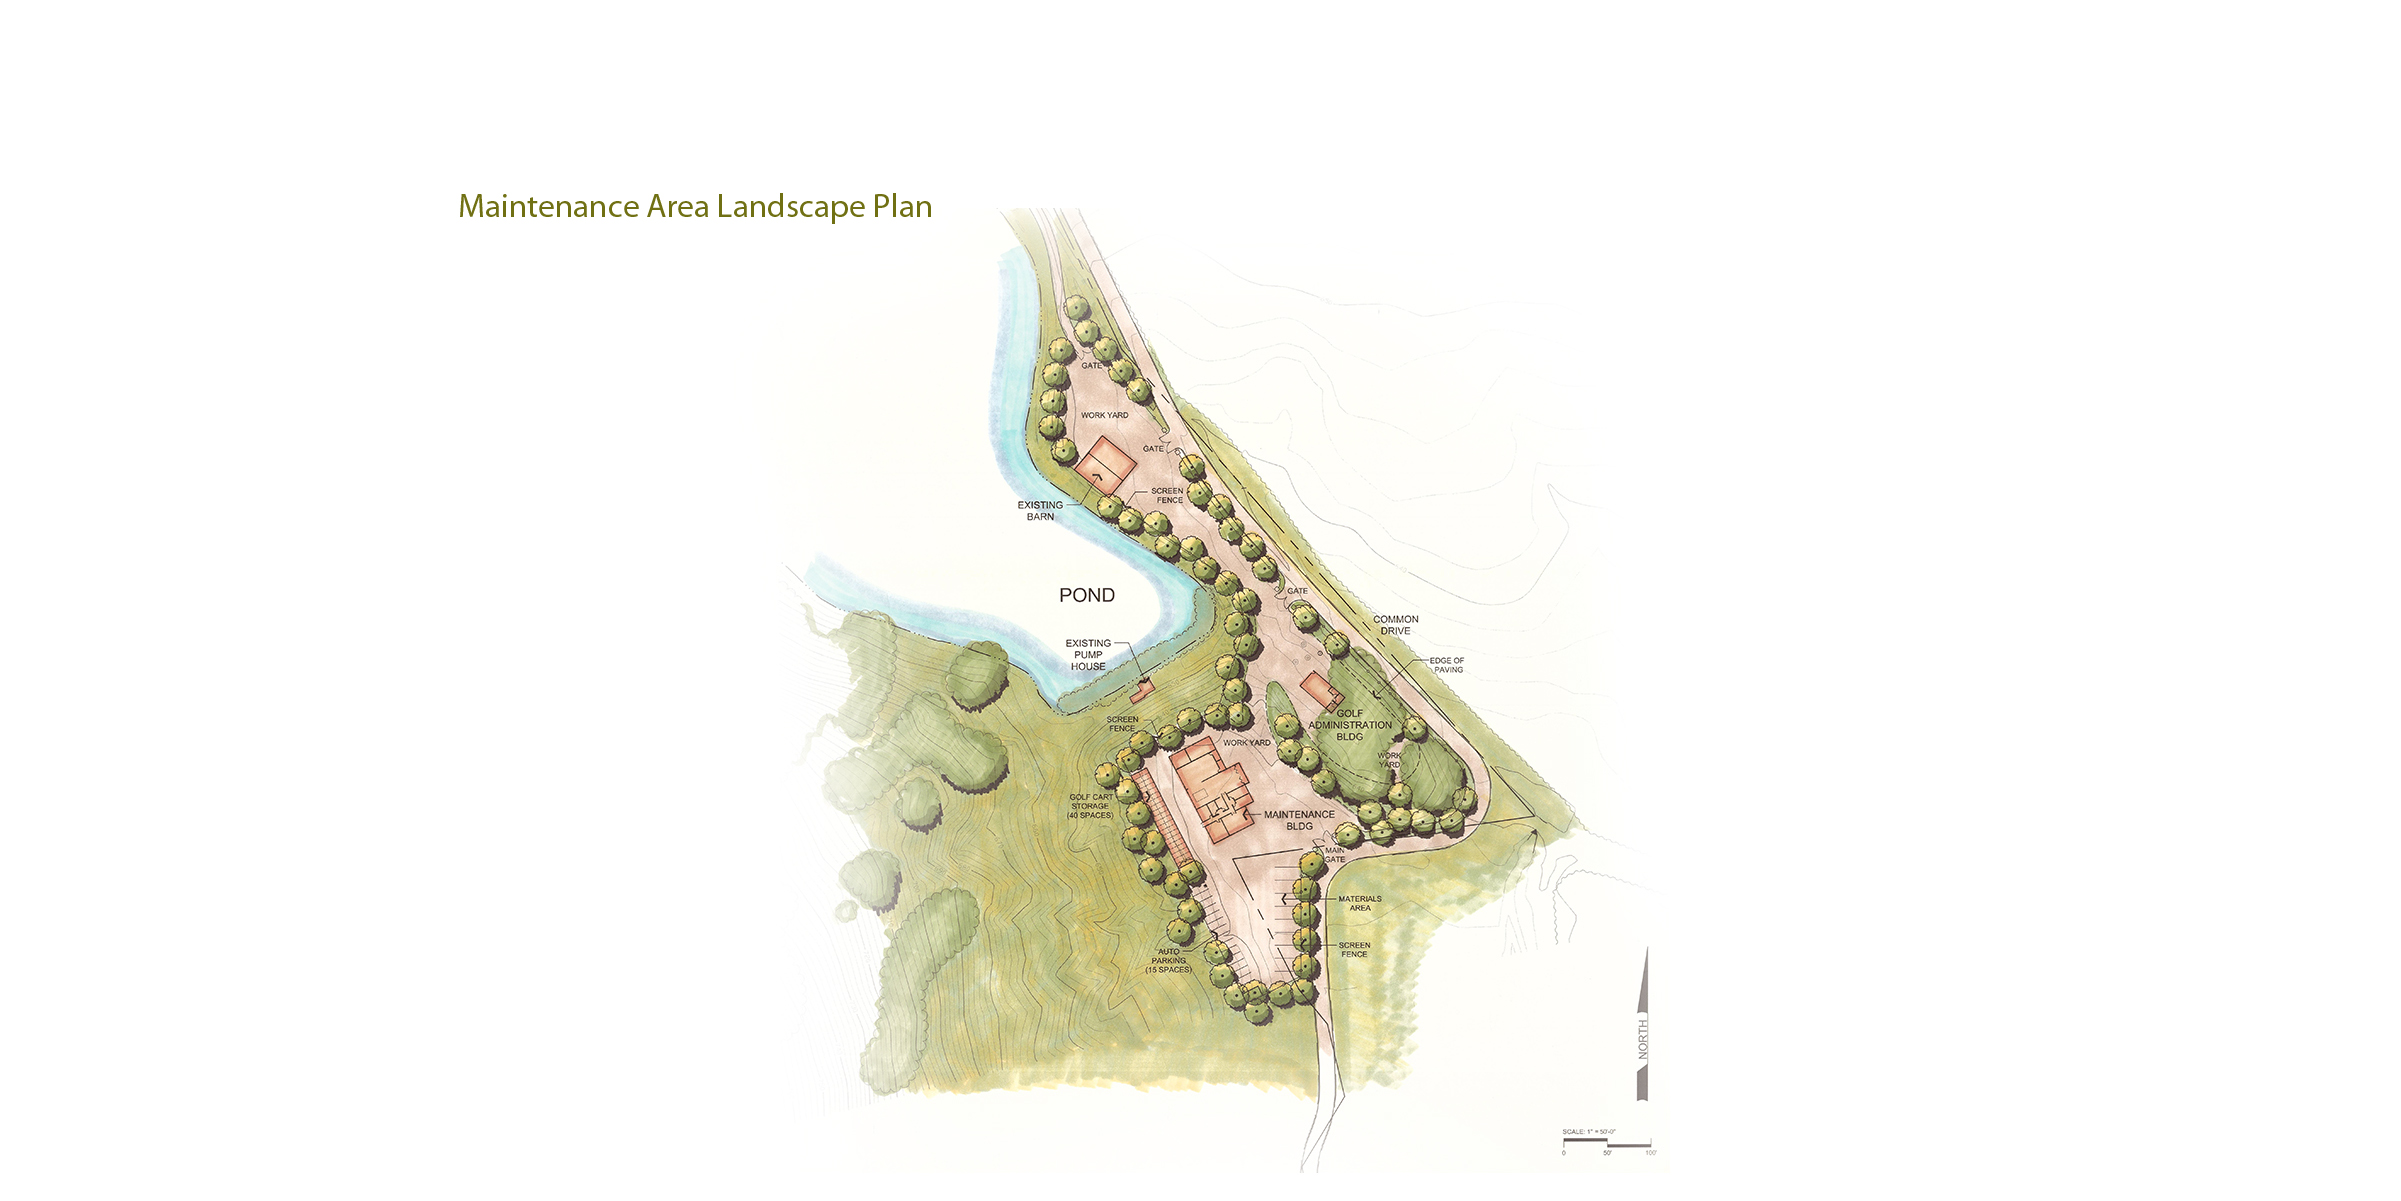 maintenance area landscape plan-drawing-01